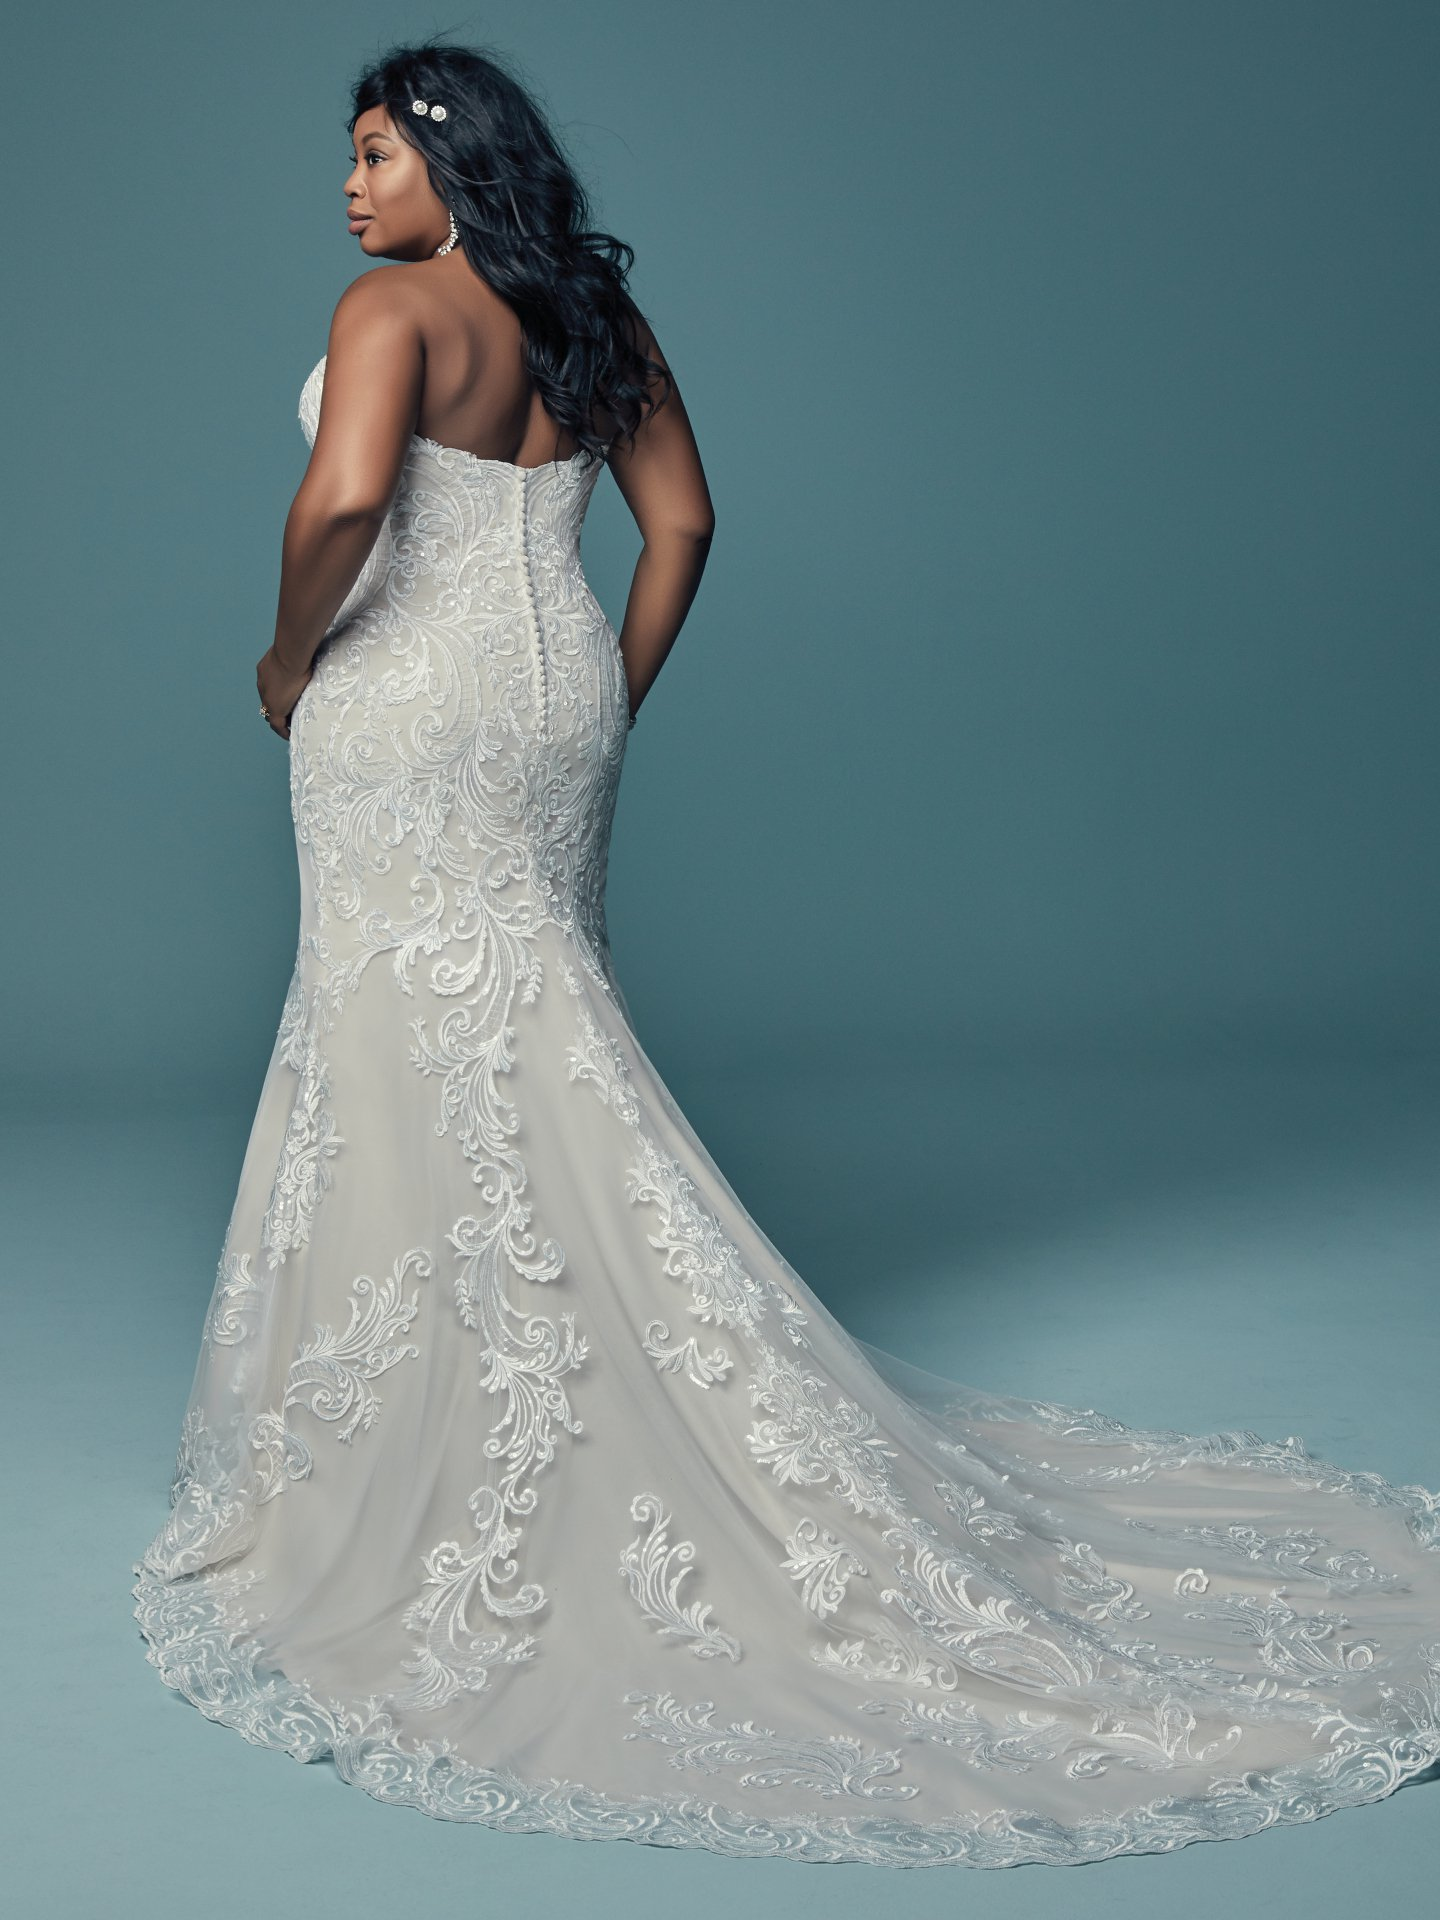 Beading And Embroidered Fit And Flare Wedding Dress | Kleinfeld Bridal